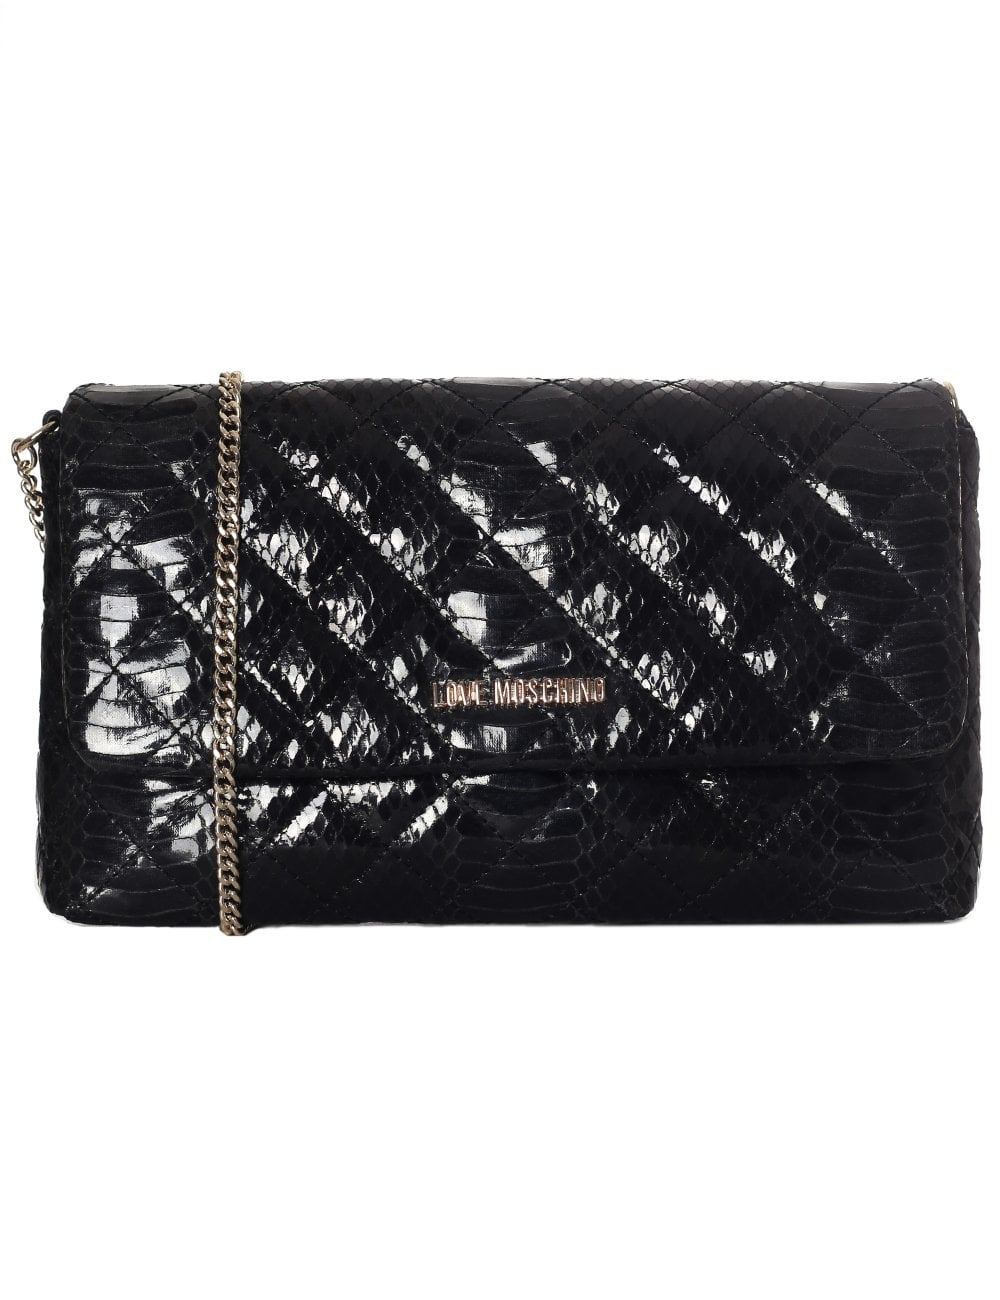 36803bfd834c Love Moschino Women s Quilted Clutch With Chain Black